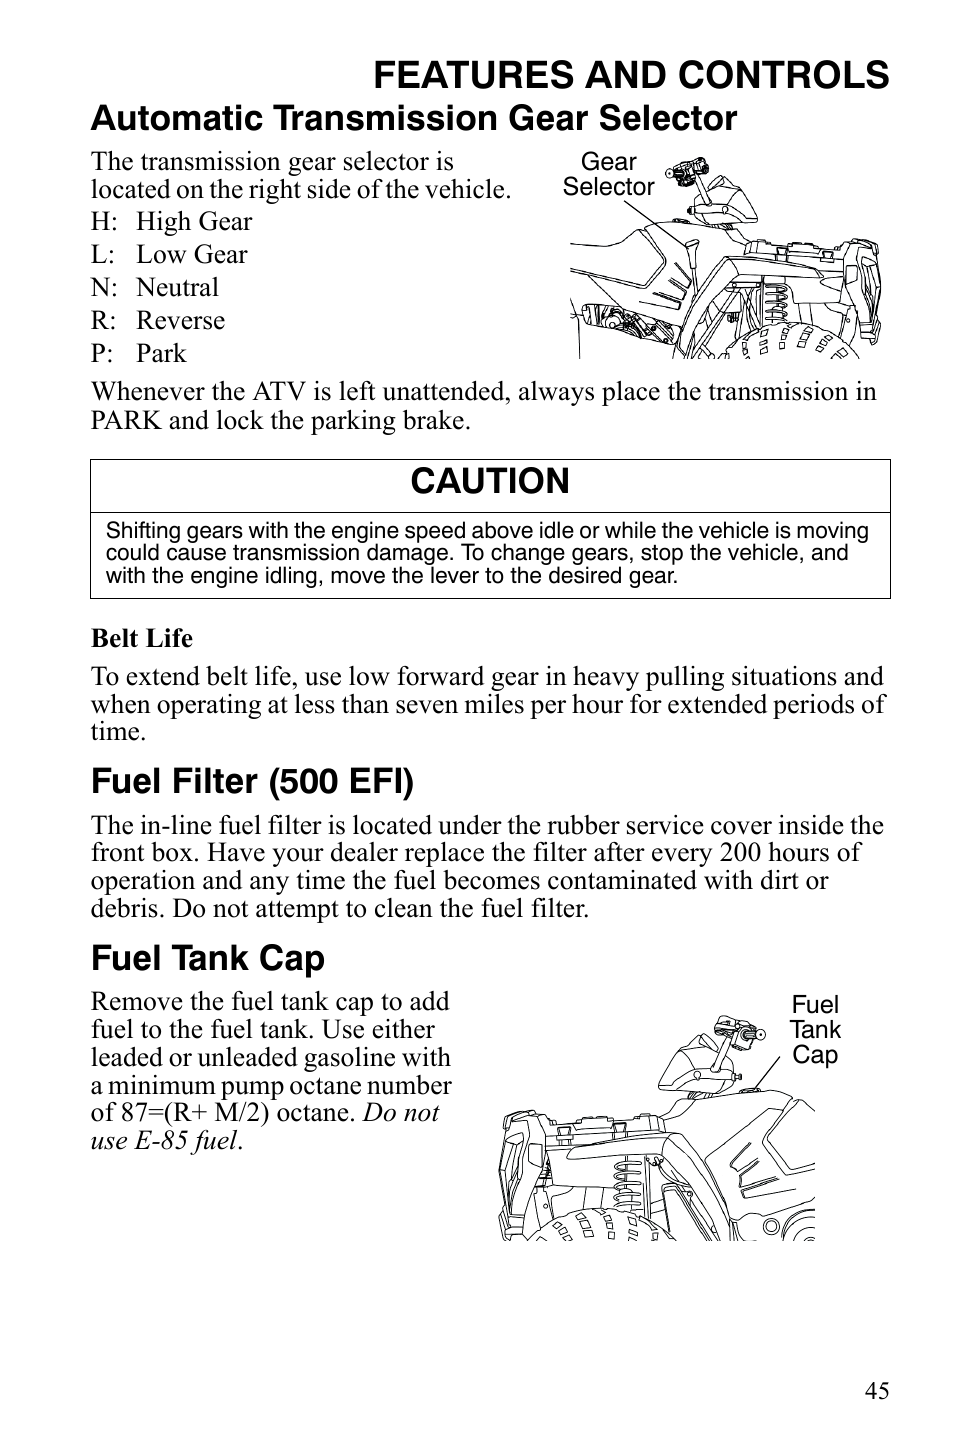 Polaris Sportsman 500 Fuel Filter Location 2004 700 Features And Controls Automatic Transmission Gear Selector Efi User Manual Page